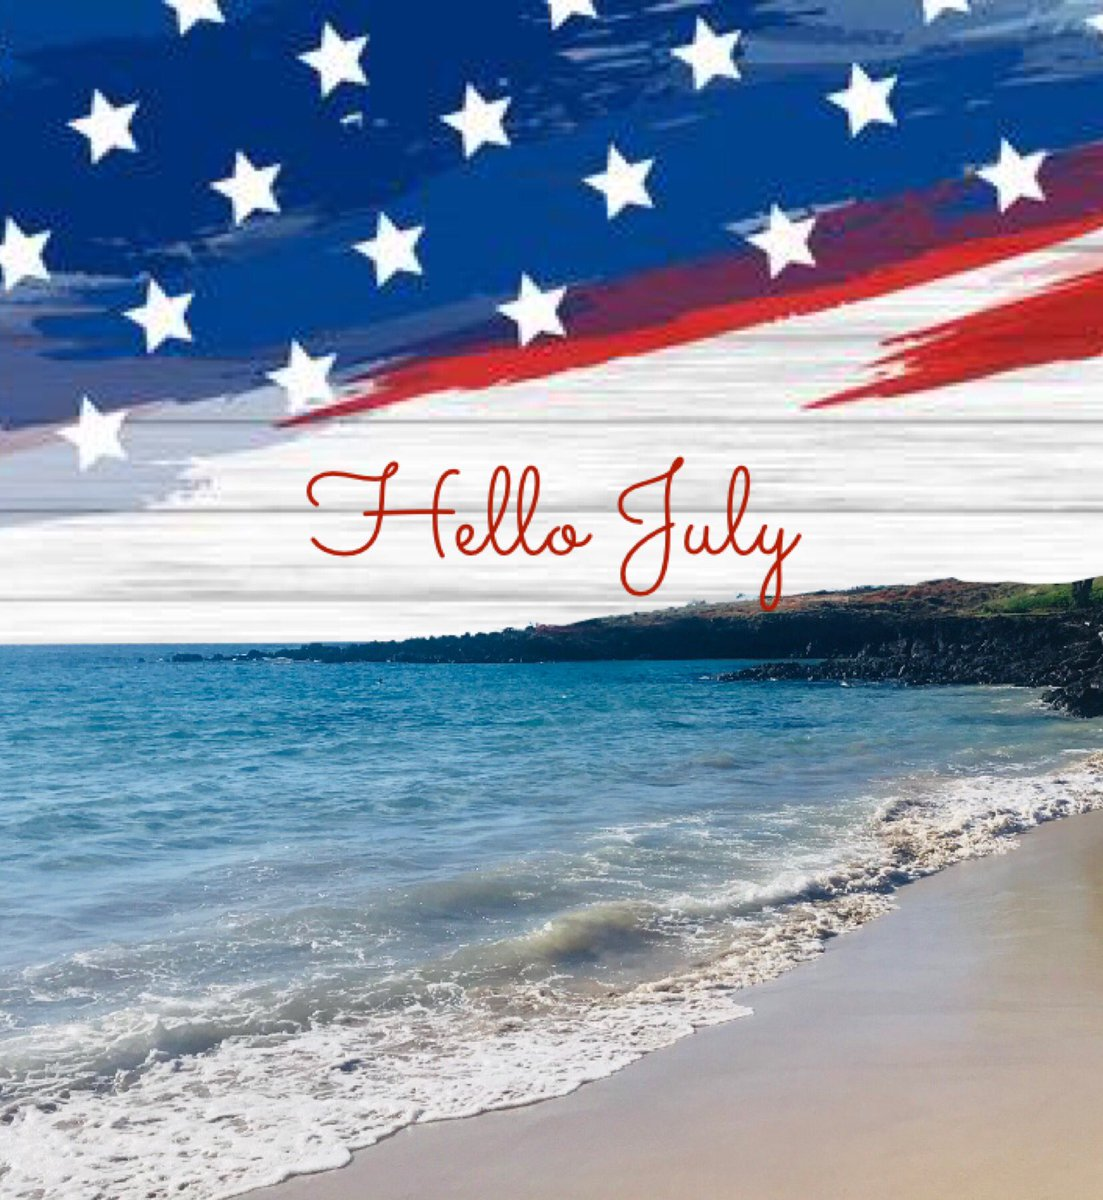 Hello July! Let's make this new month sparkle! Aloha    #julyfirst #HappyJuly1st #wednesdaymorning<br>http://pic.twitter.com/jv4WSNntGa